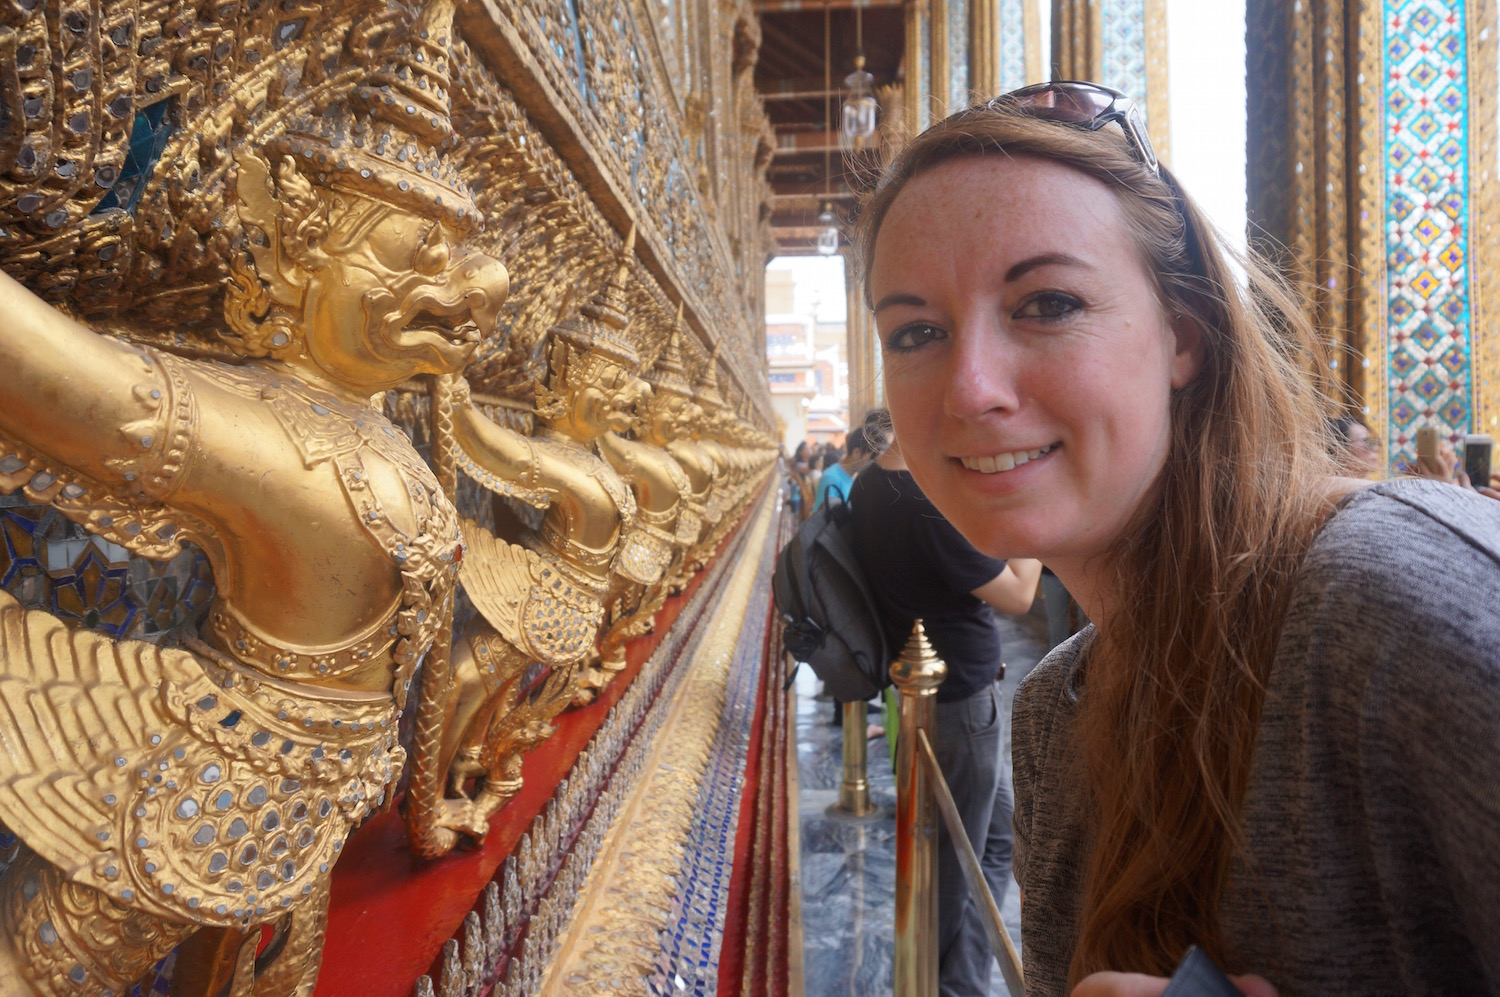 Bangkok Top 10 - Grand Palace